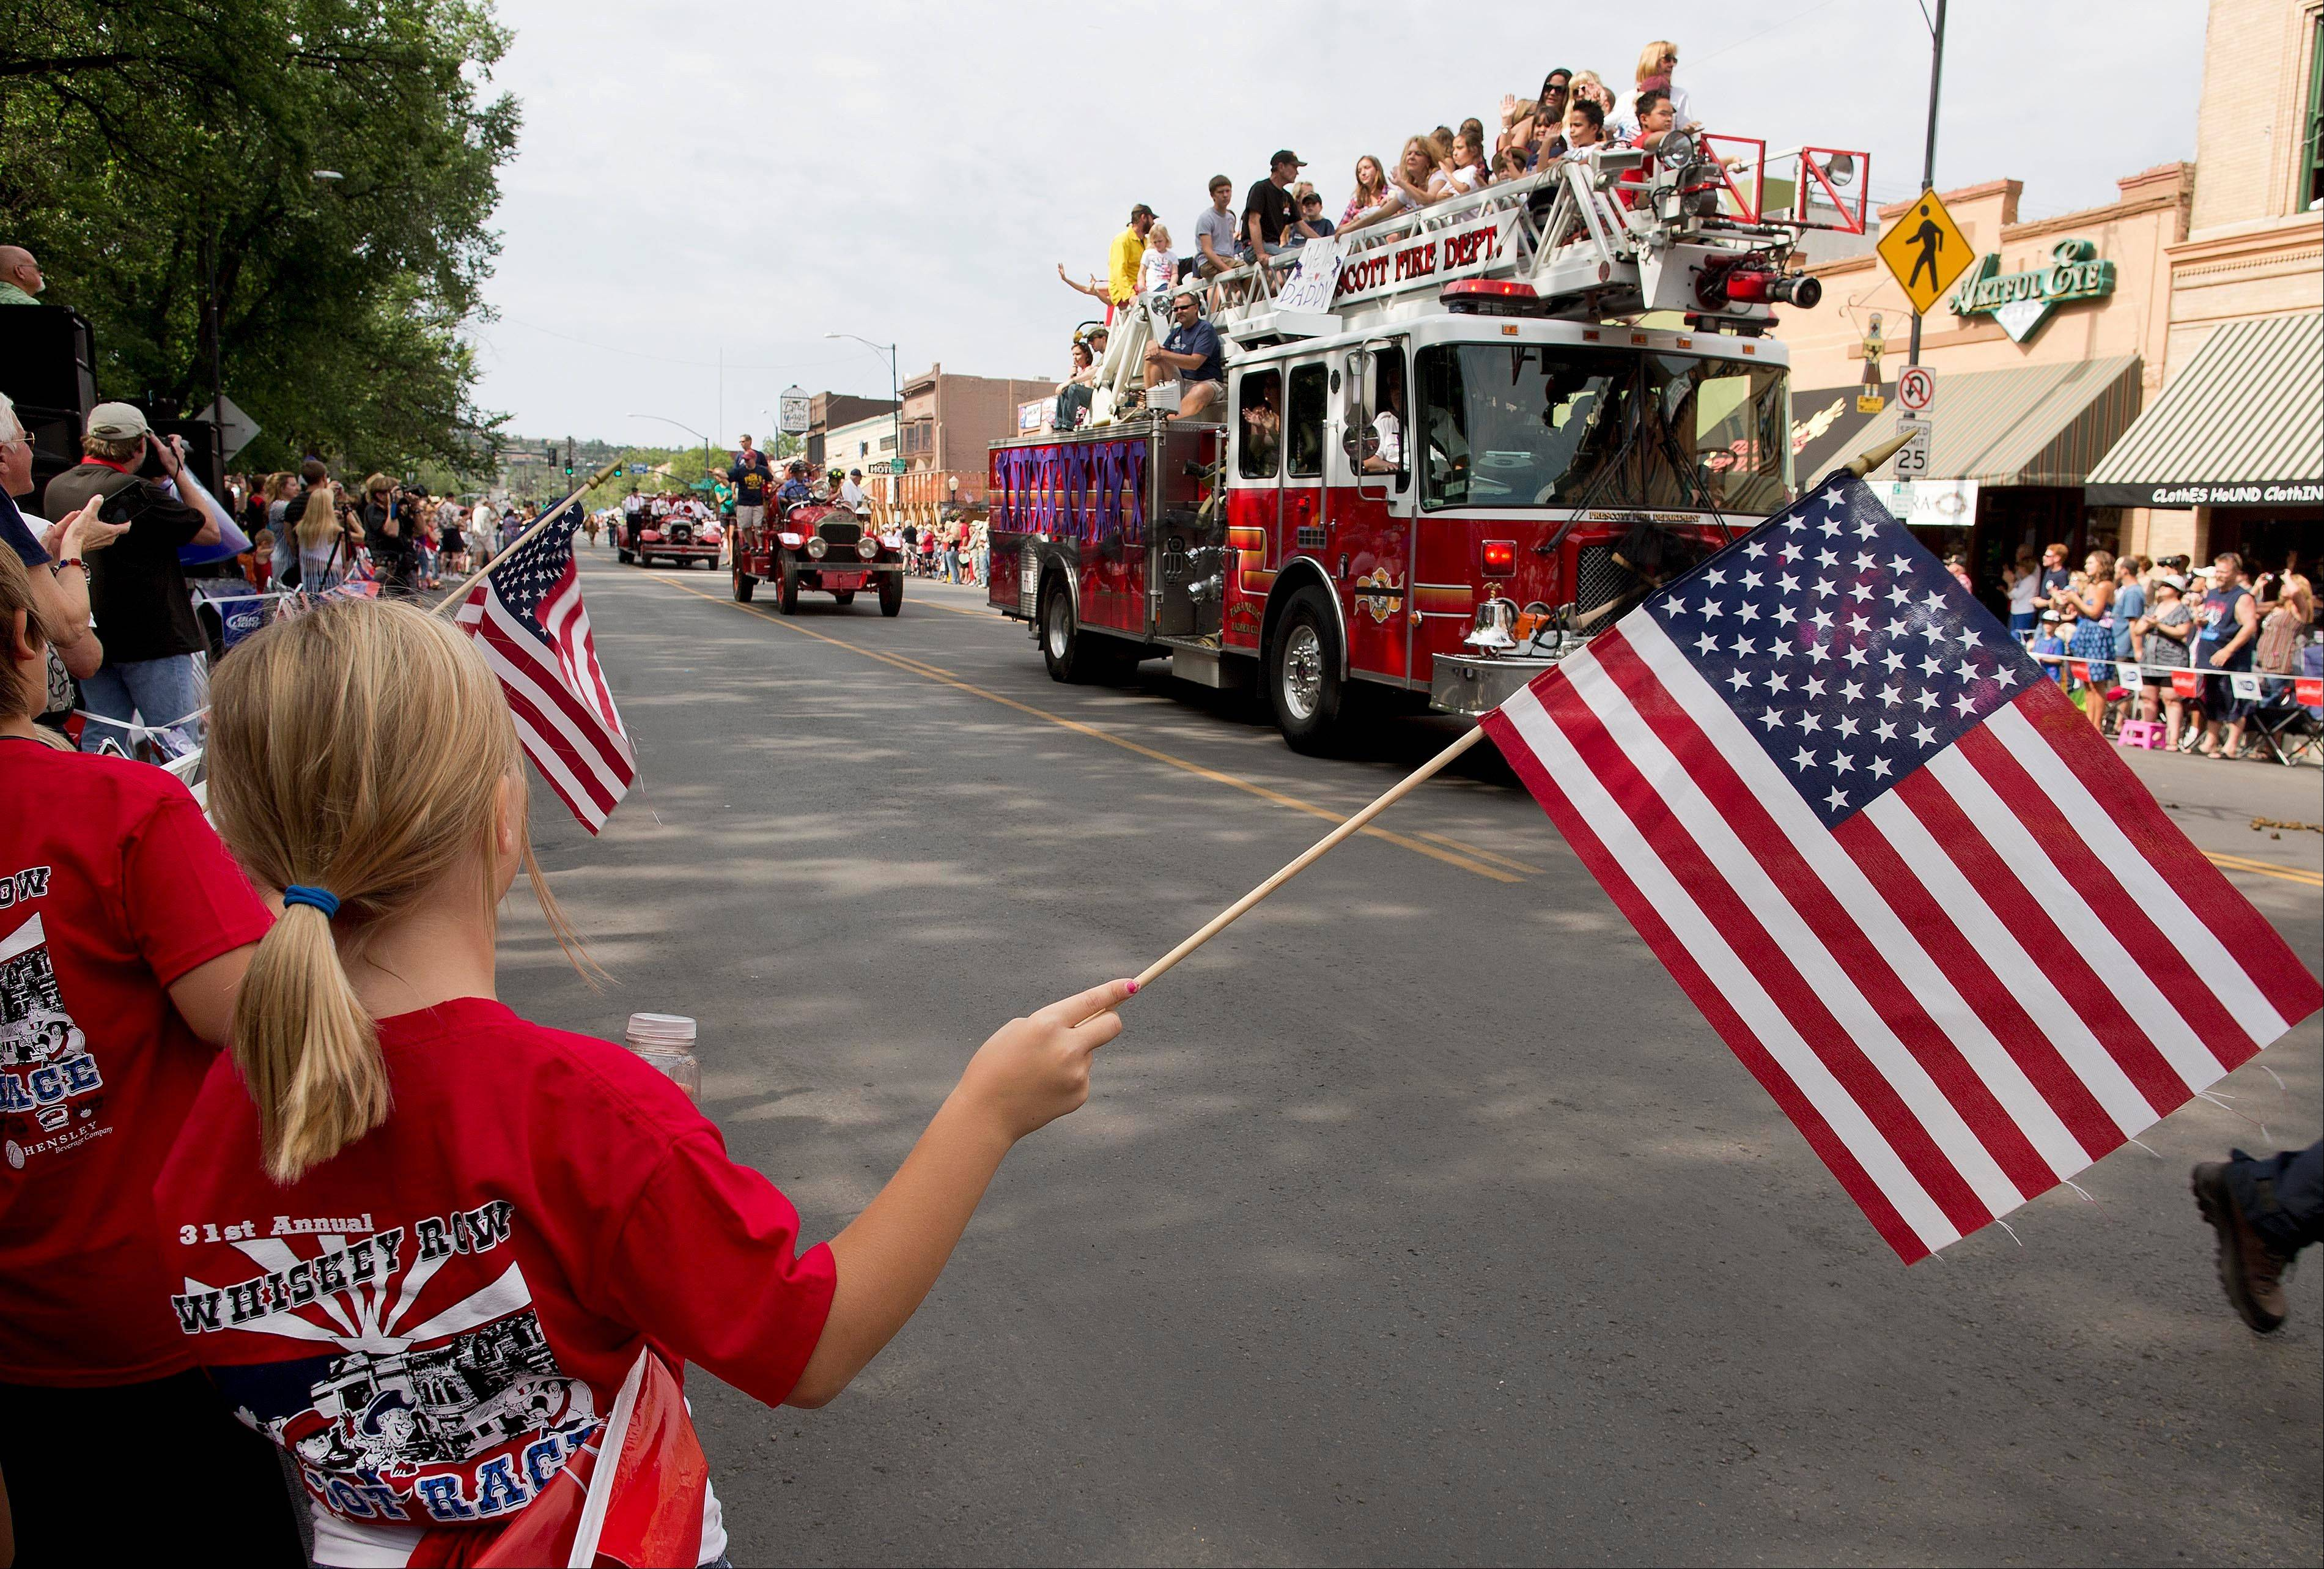 Associated Press Spectators stand as a Prescott Fire Department engine, carrying family members of the 19 fallen Granite Mountain Hotshot firefighters, slowly rolls down Montezuma Street during the Prescott Frontier Days Rodeo Parade, Saturday, July 6, in Prescott, Ariz. The procession of fire trucks started the parade to honor the Hotshots who were killed battling a blaze near Yarnell, Ariz. last week.